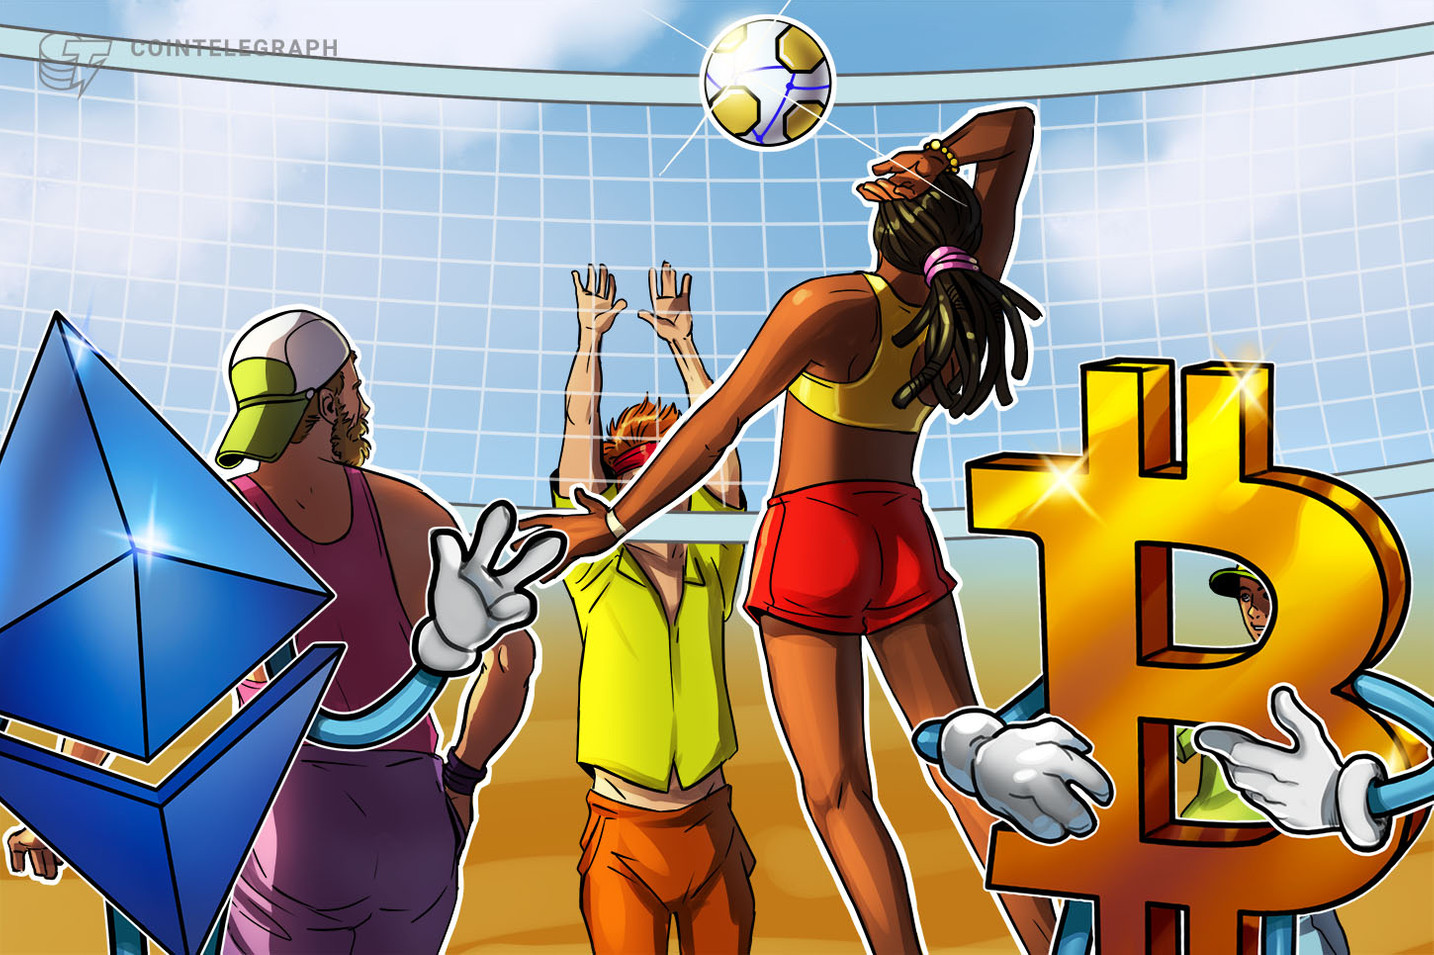 South Korean Beachgoers Can Now Use Bitcoin to Pay for Services